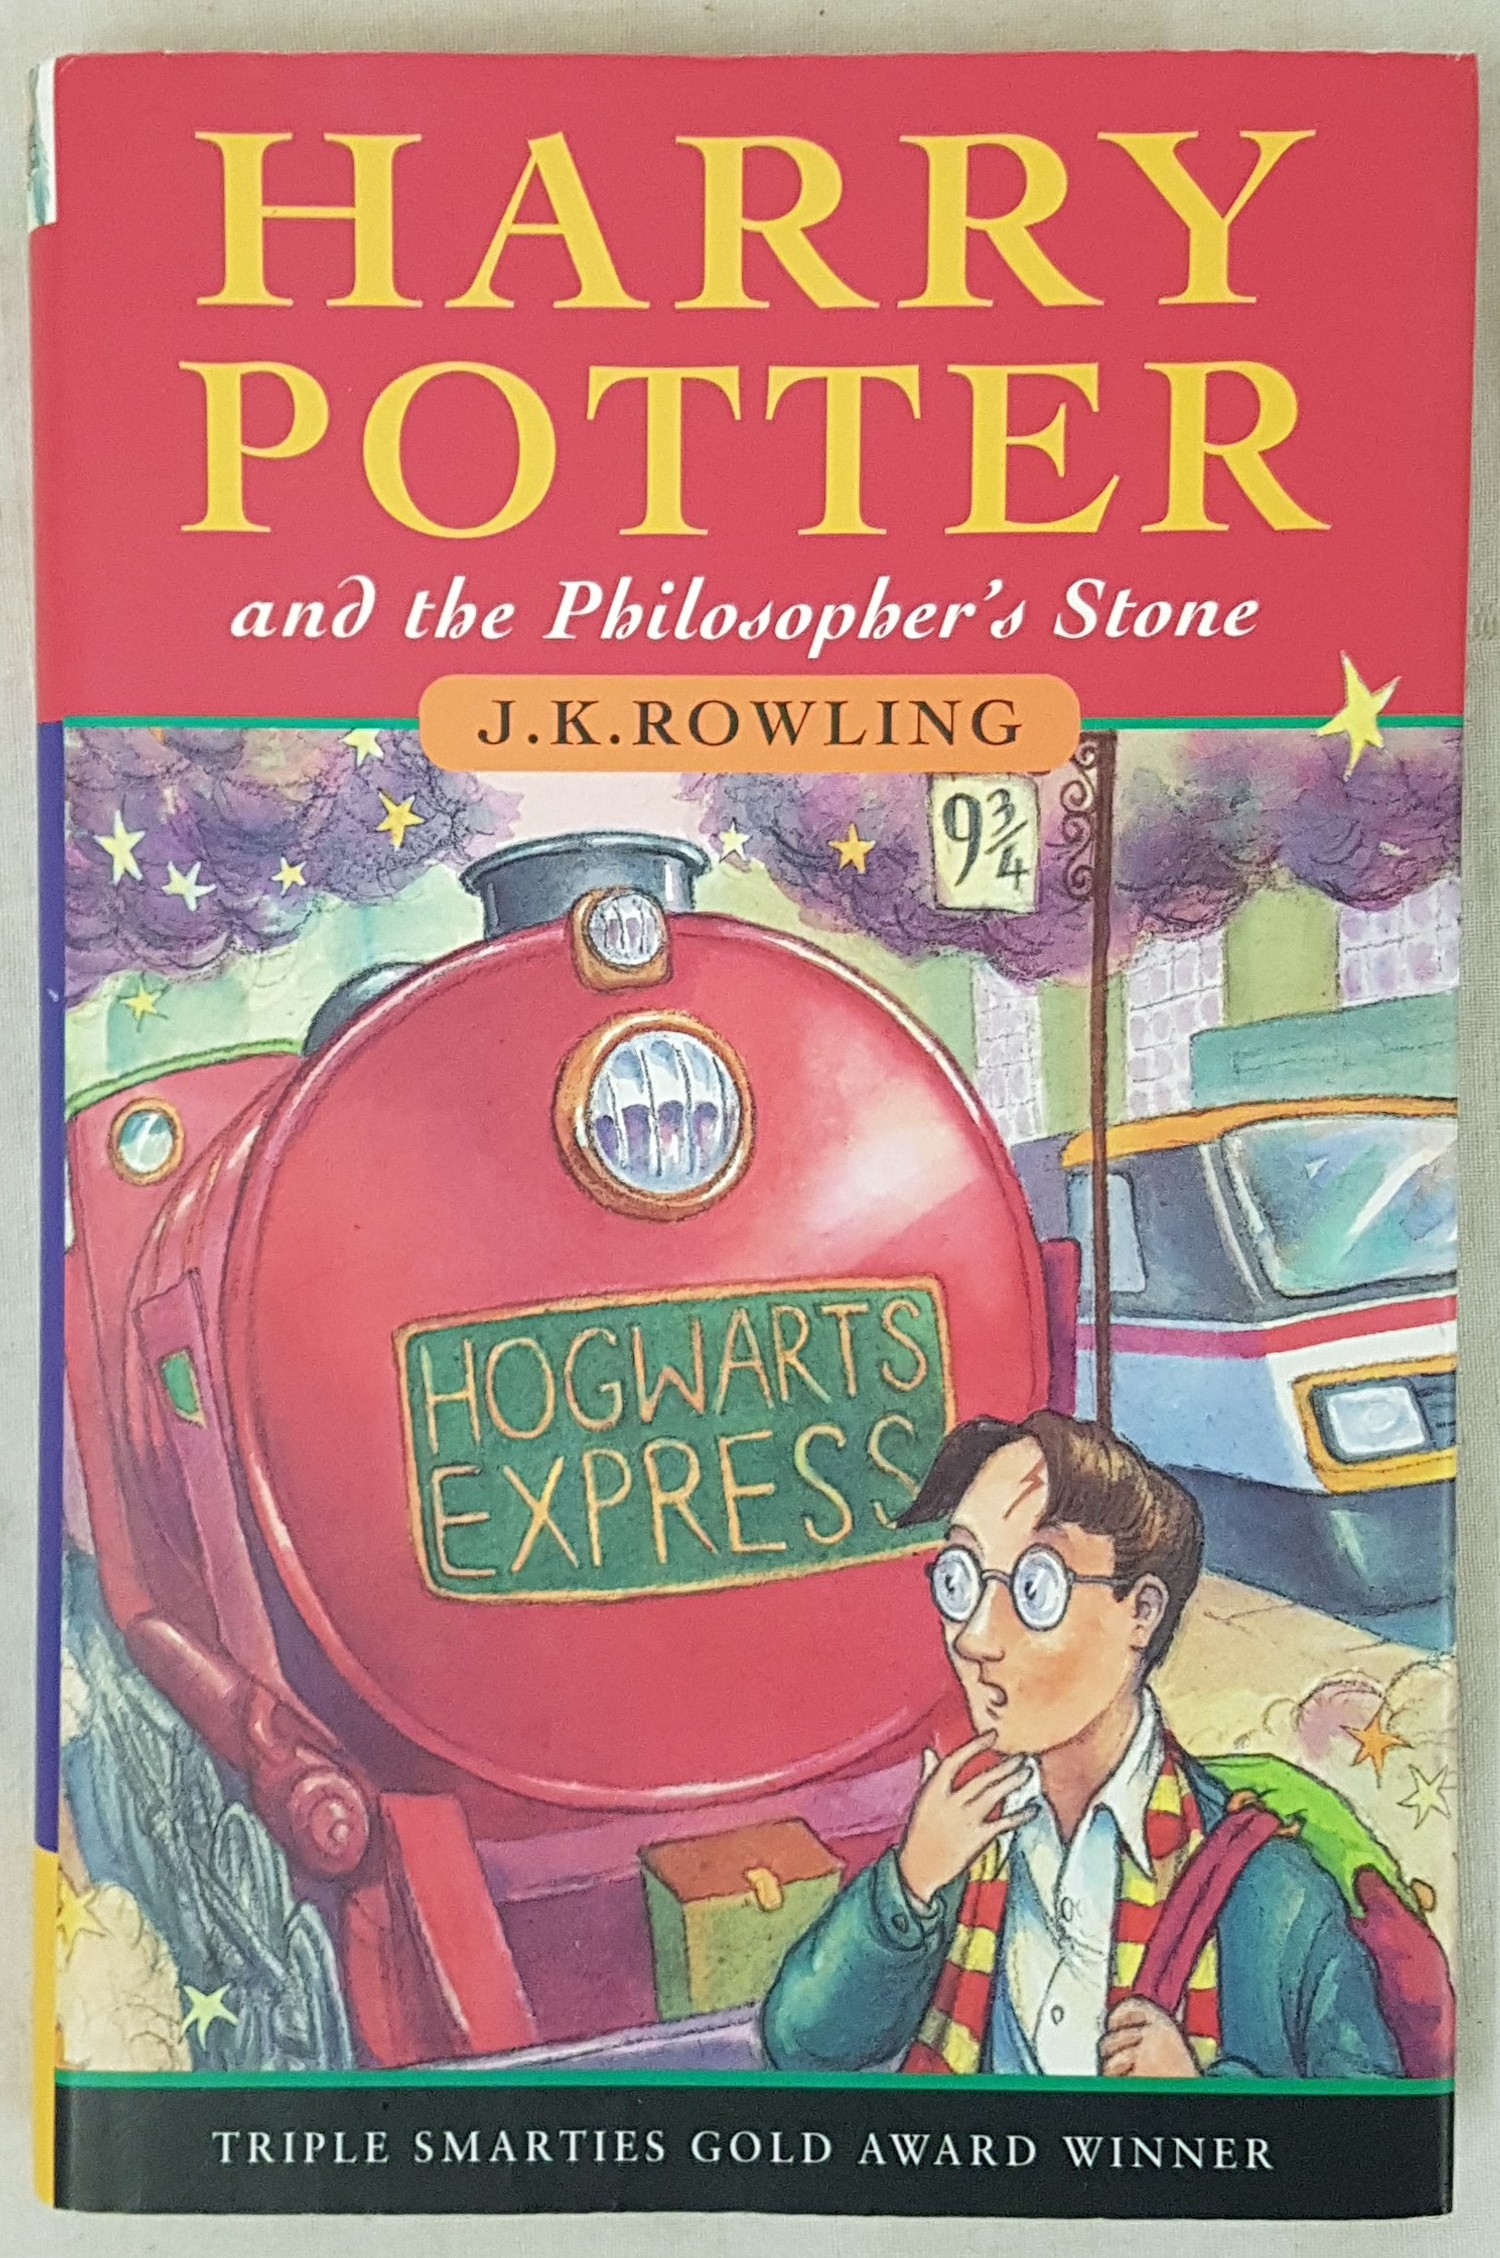 Harry Potter and the Philosopher's Stone, J.K. Rowling, 1st Edition, 28th printing, Bloomsbury, with